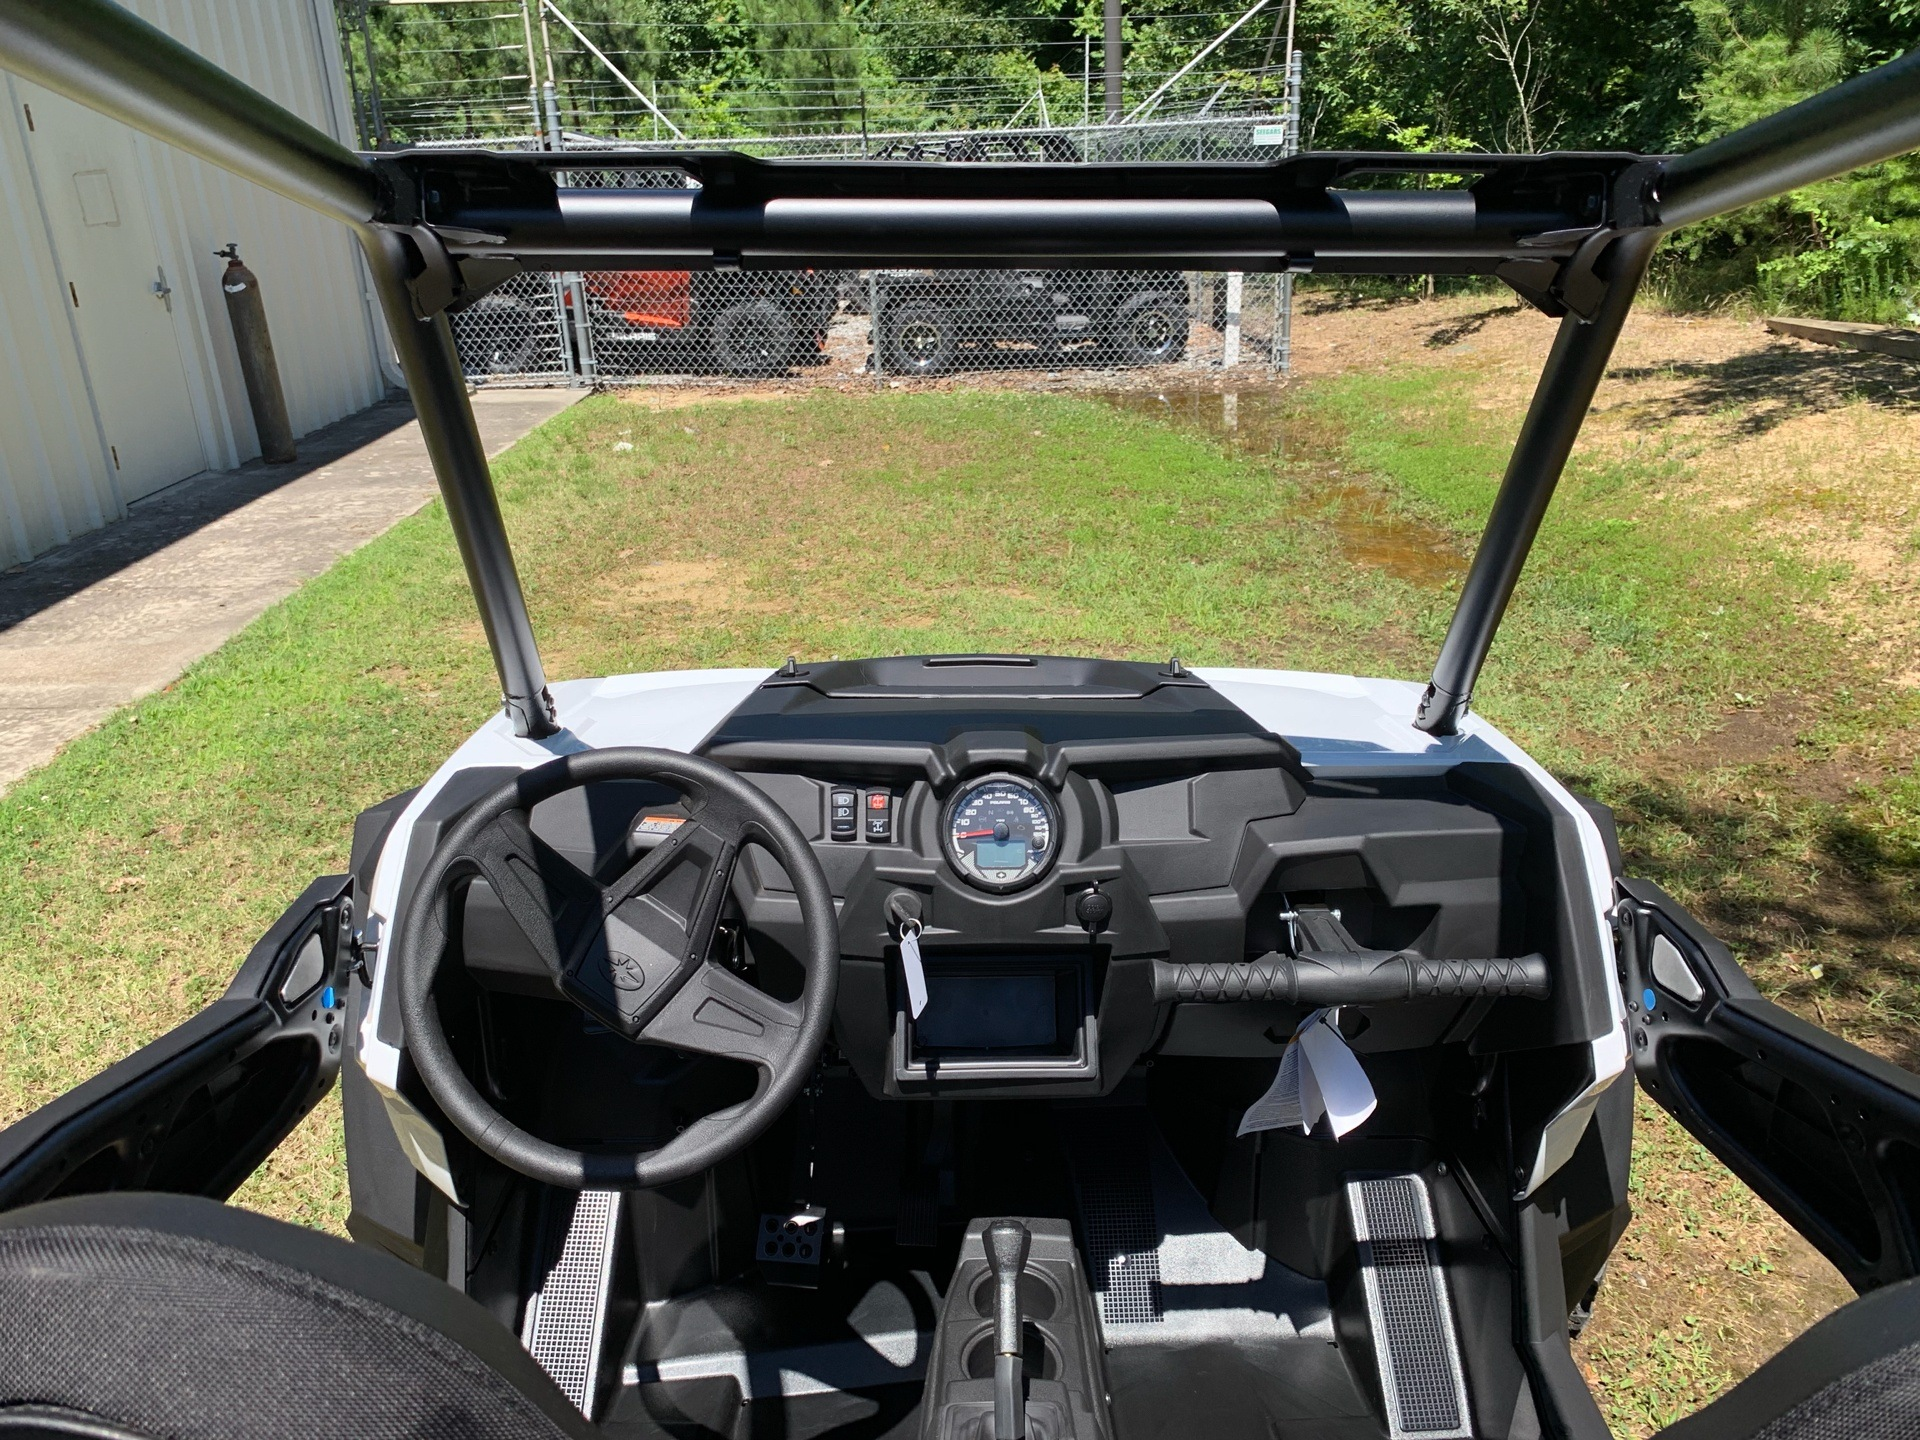 2019 Polaris RZR S 900 in High Point, North Carolina - Photo 12